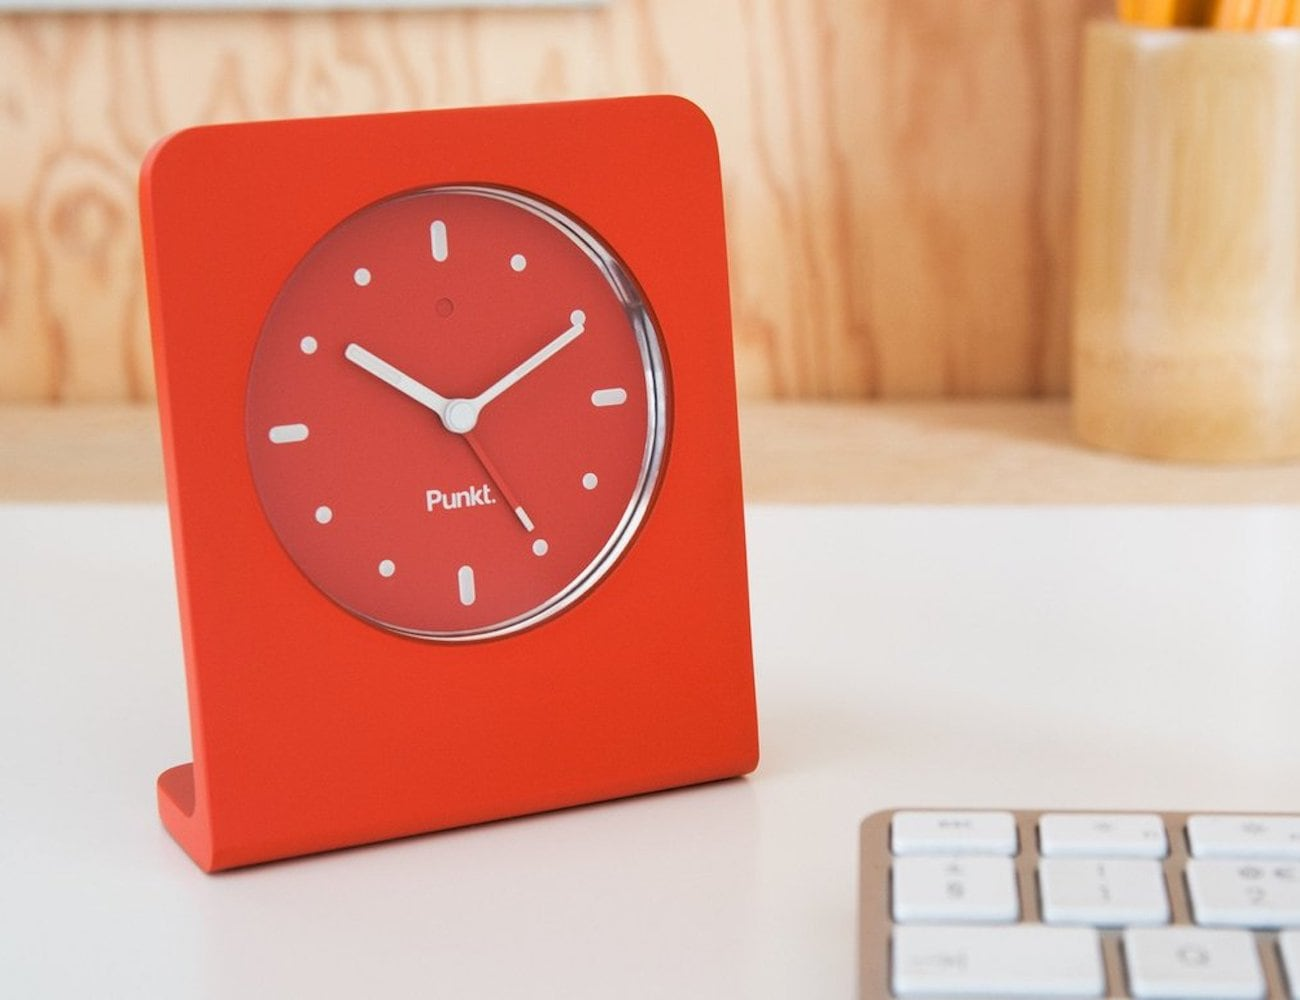 punkt ac01 reliable alarm clock 15 minute news